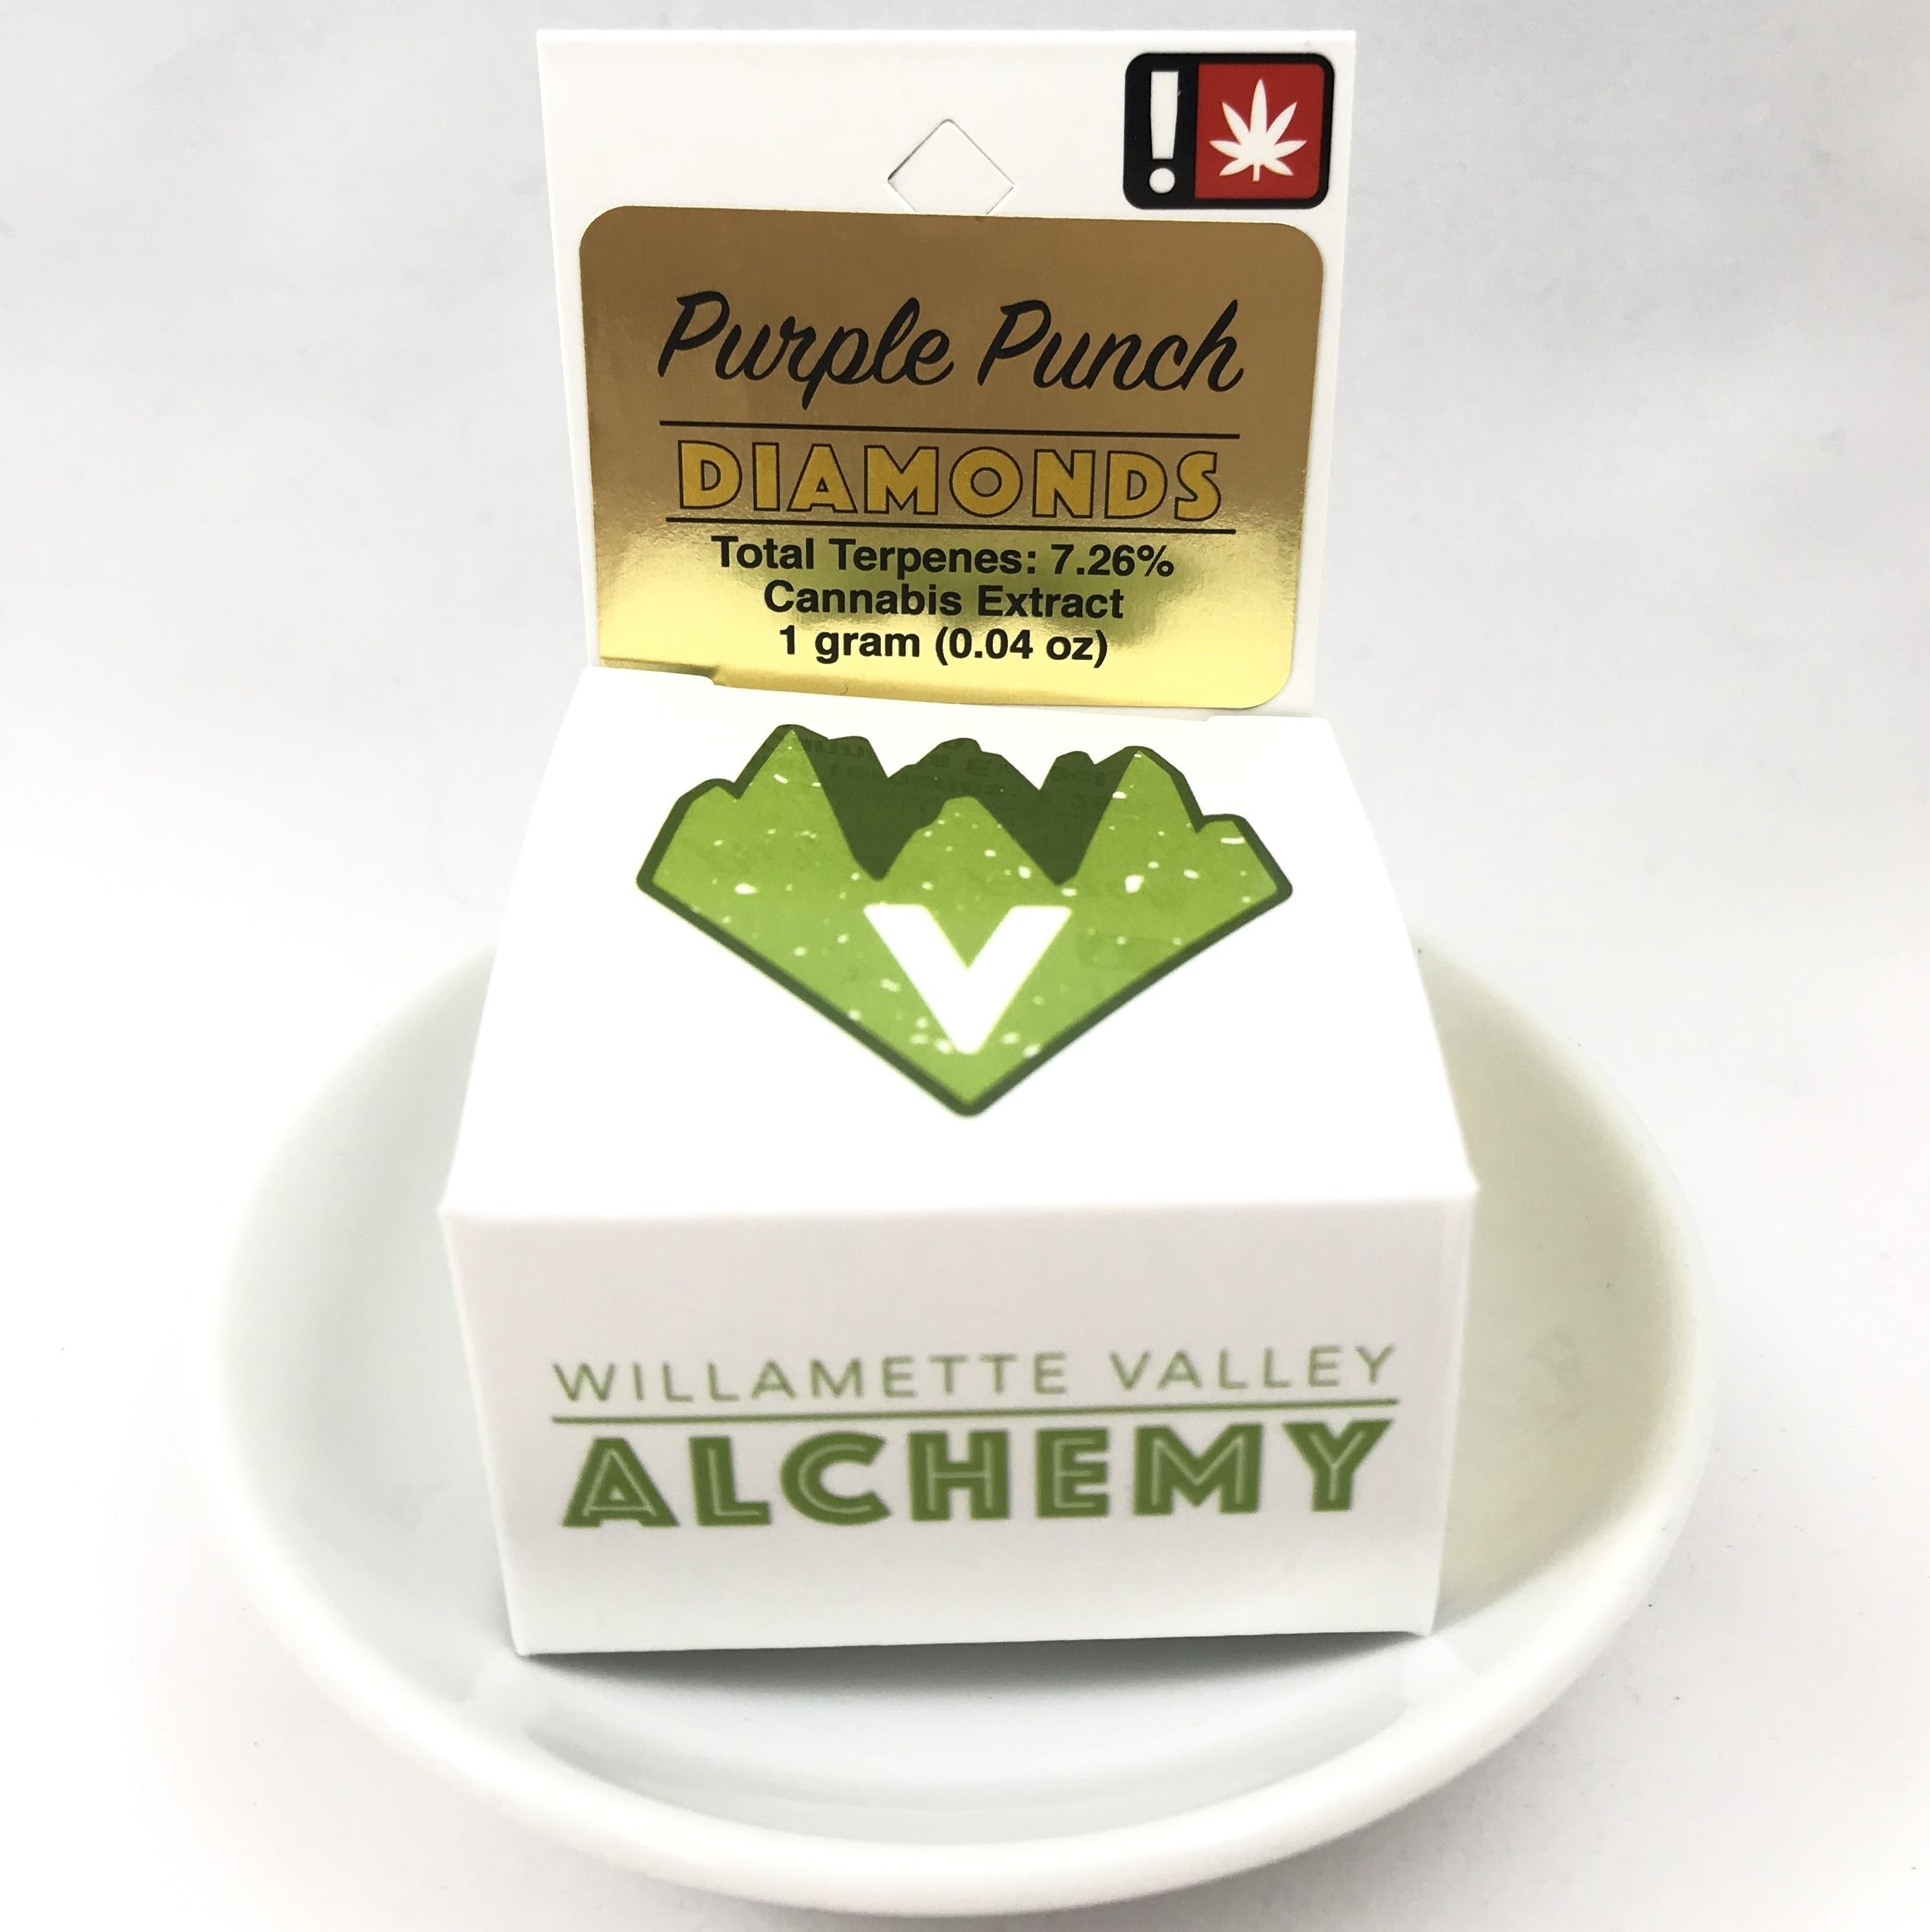 WILLAMETTE VALLEY ALCHEMY- Purple Punch Diamonds